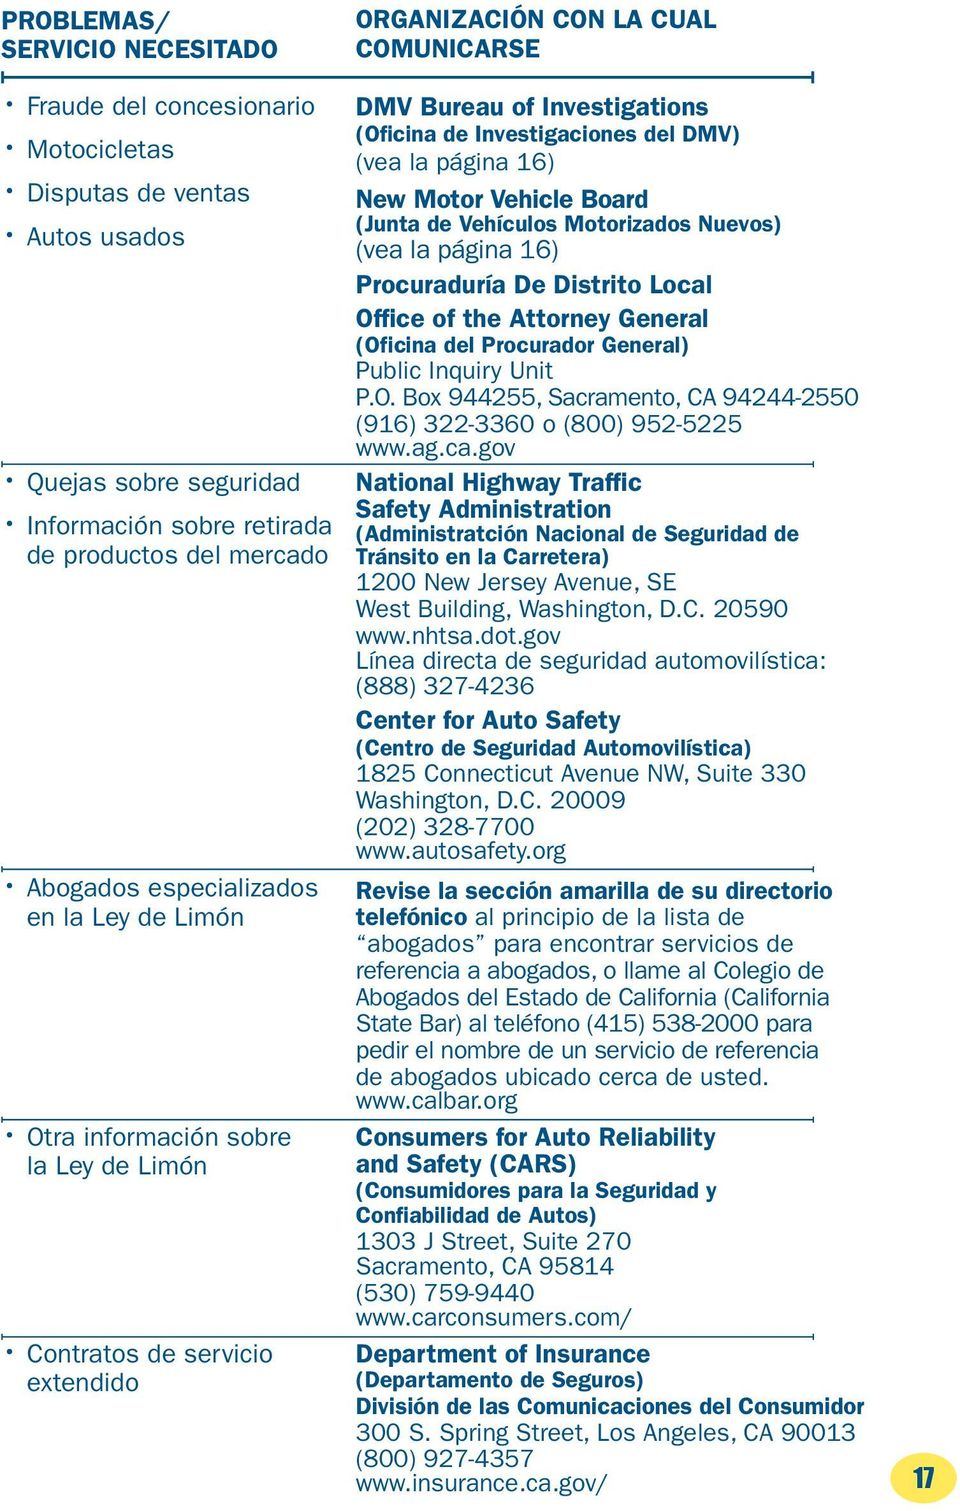 Motor Vehicle Board (Junta de Vehículos Motorizados Nuevos) Procuraduría De Distrito Local Office of the Attorney General (Oficina del Procurador General) National Highway Traffic Safety